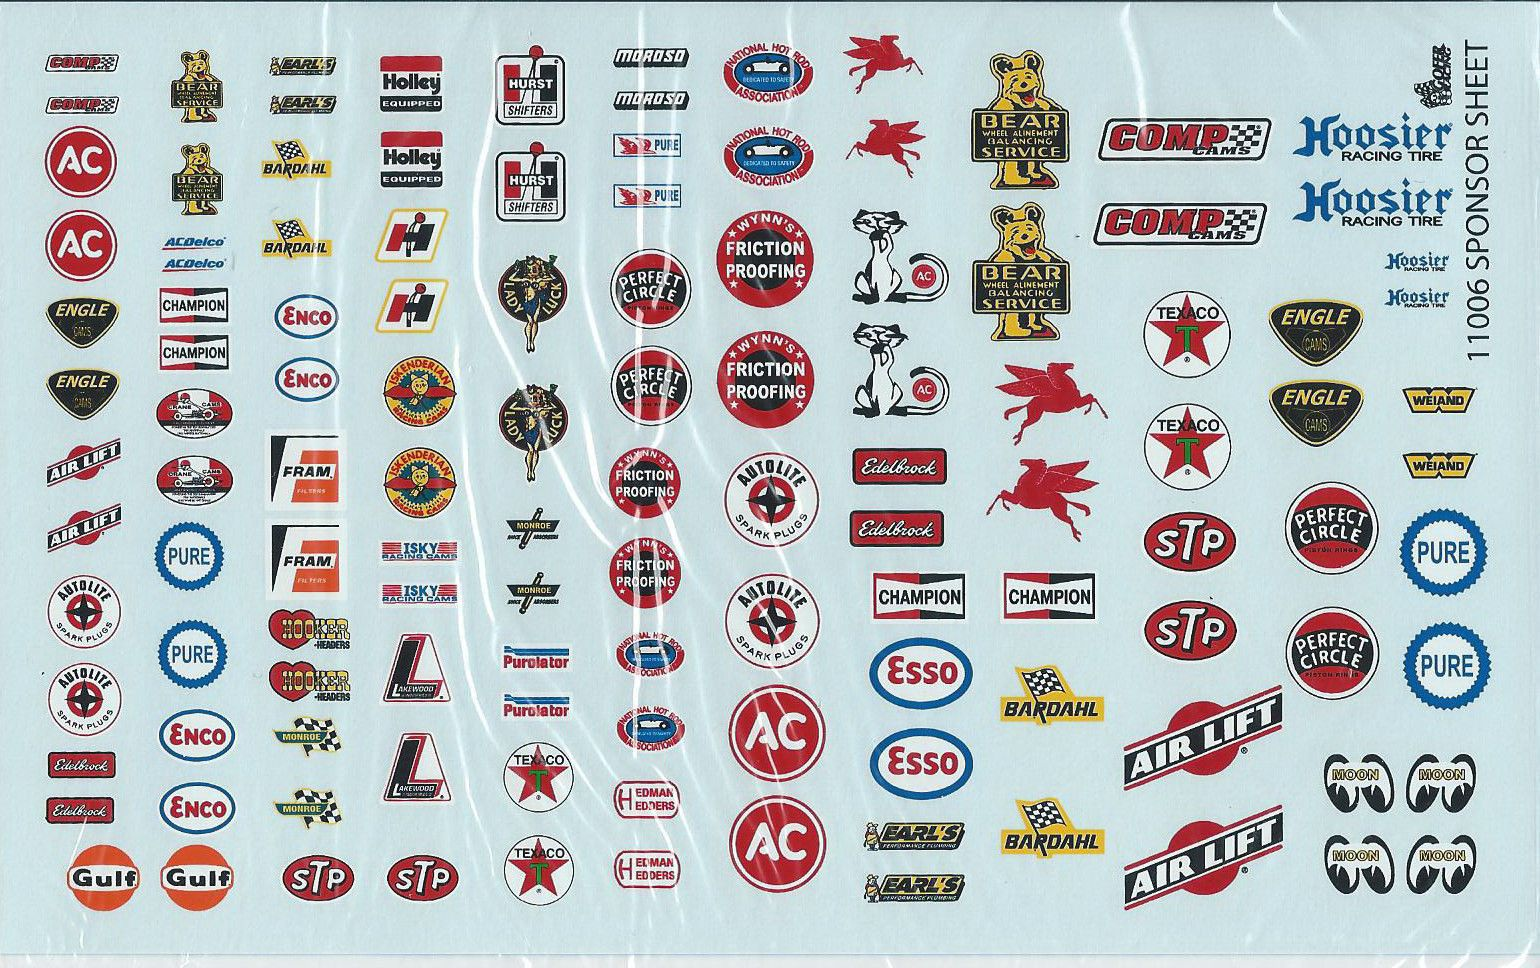 Gofer Racing 1 24 1 25 1 18 Scale Sponsor Decals Set 1 For Model Cars Decal Sheets Scale Models Cars Car Model